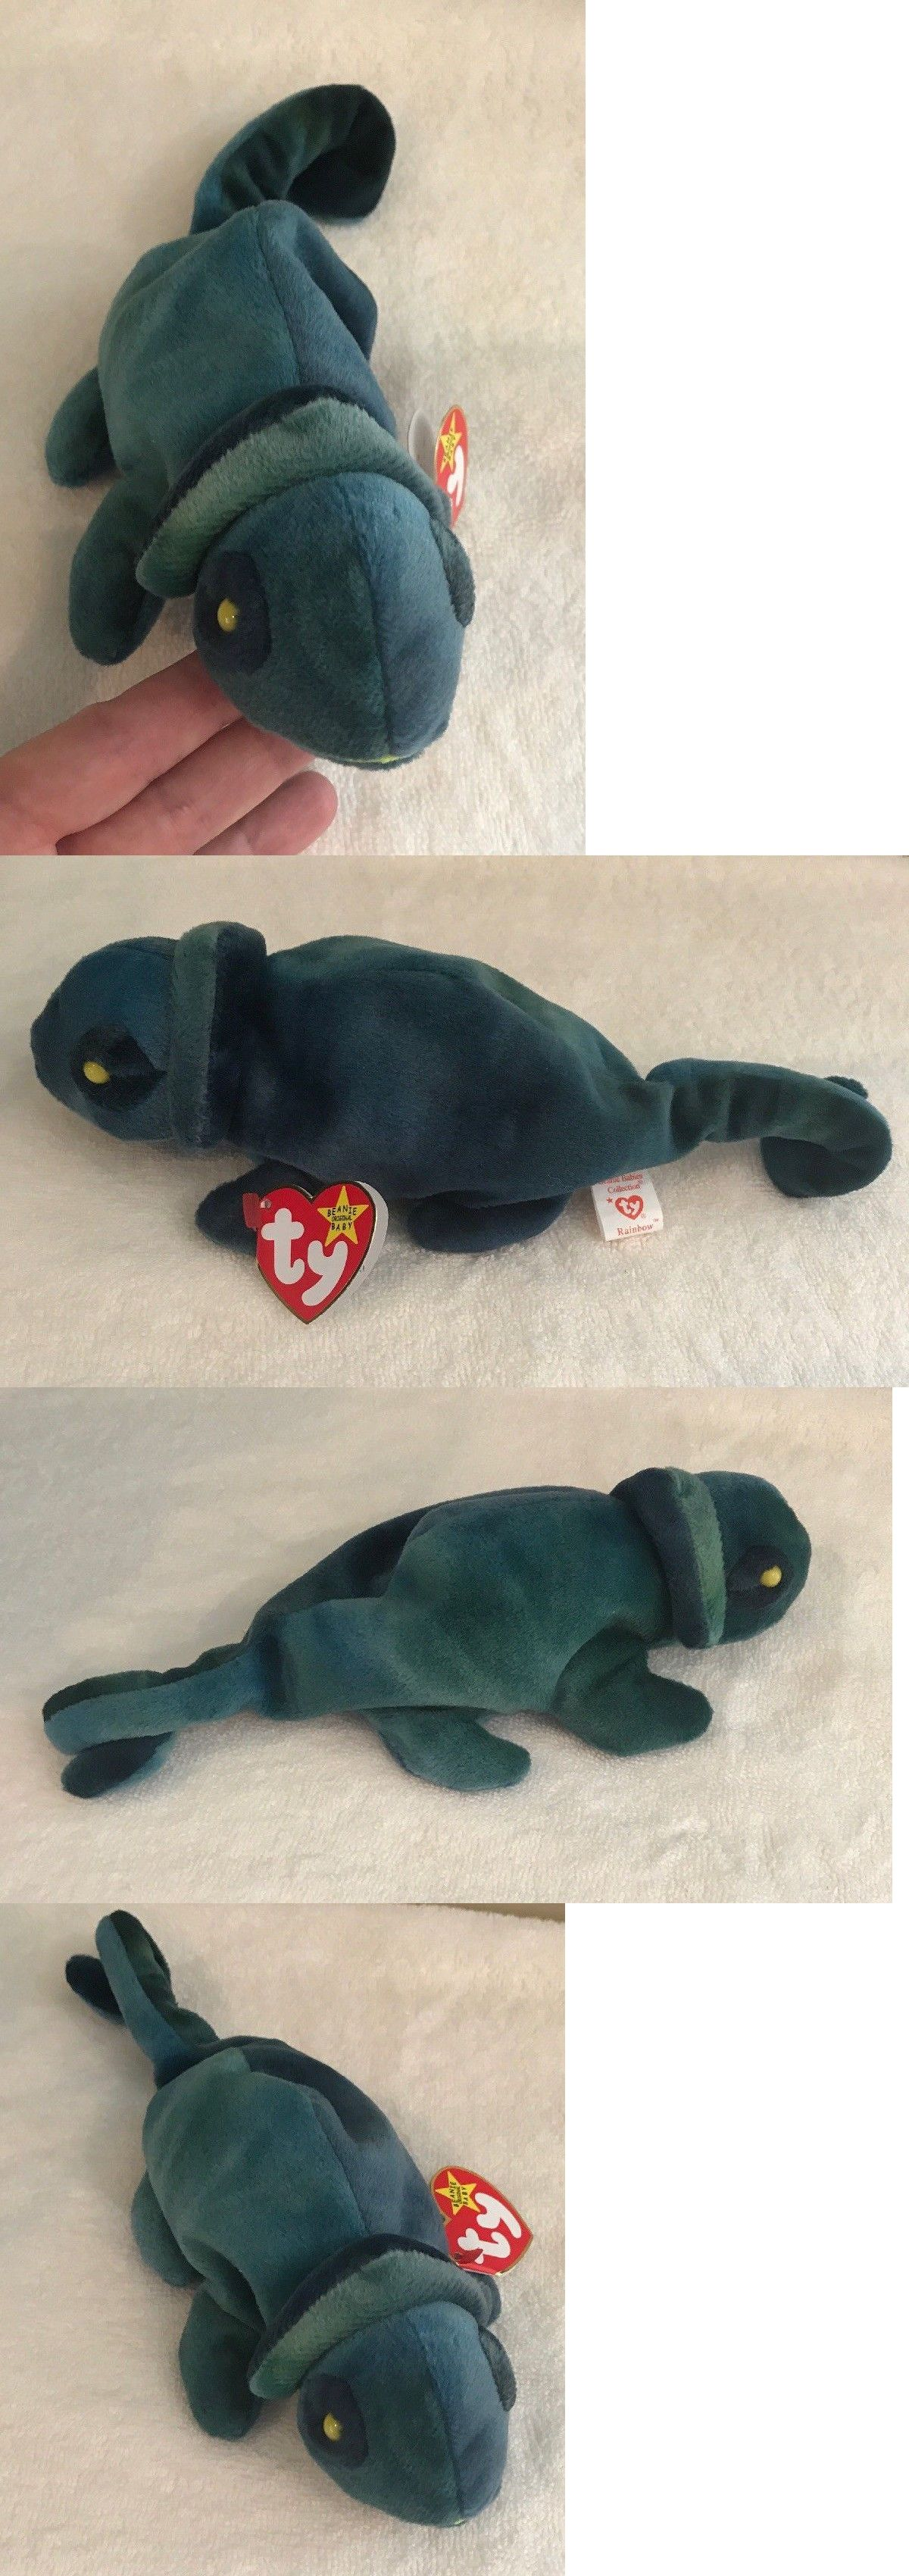 54033374fea Retired 440  1997 Ty Original Beanie Babies Rainbow The Blue Green Chameleon  W Tags 9.5 -  BUY IT NOW ONLY   11.99 on  eBay  retired  original  beanie  ...